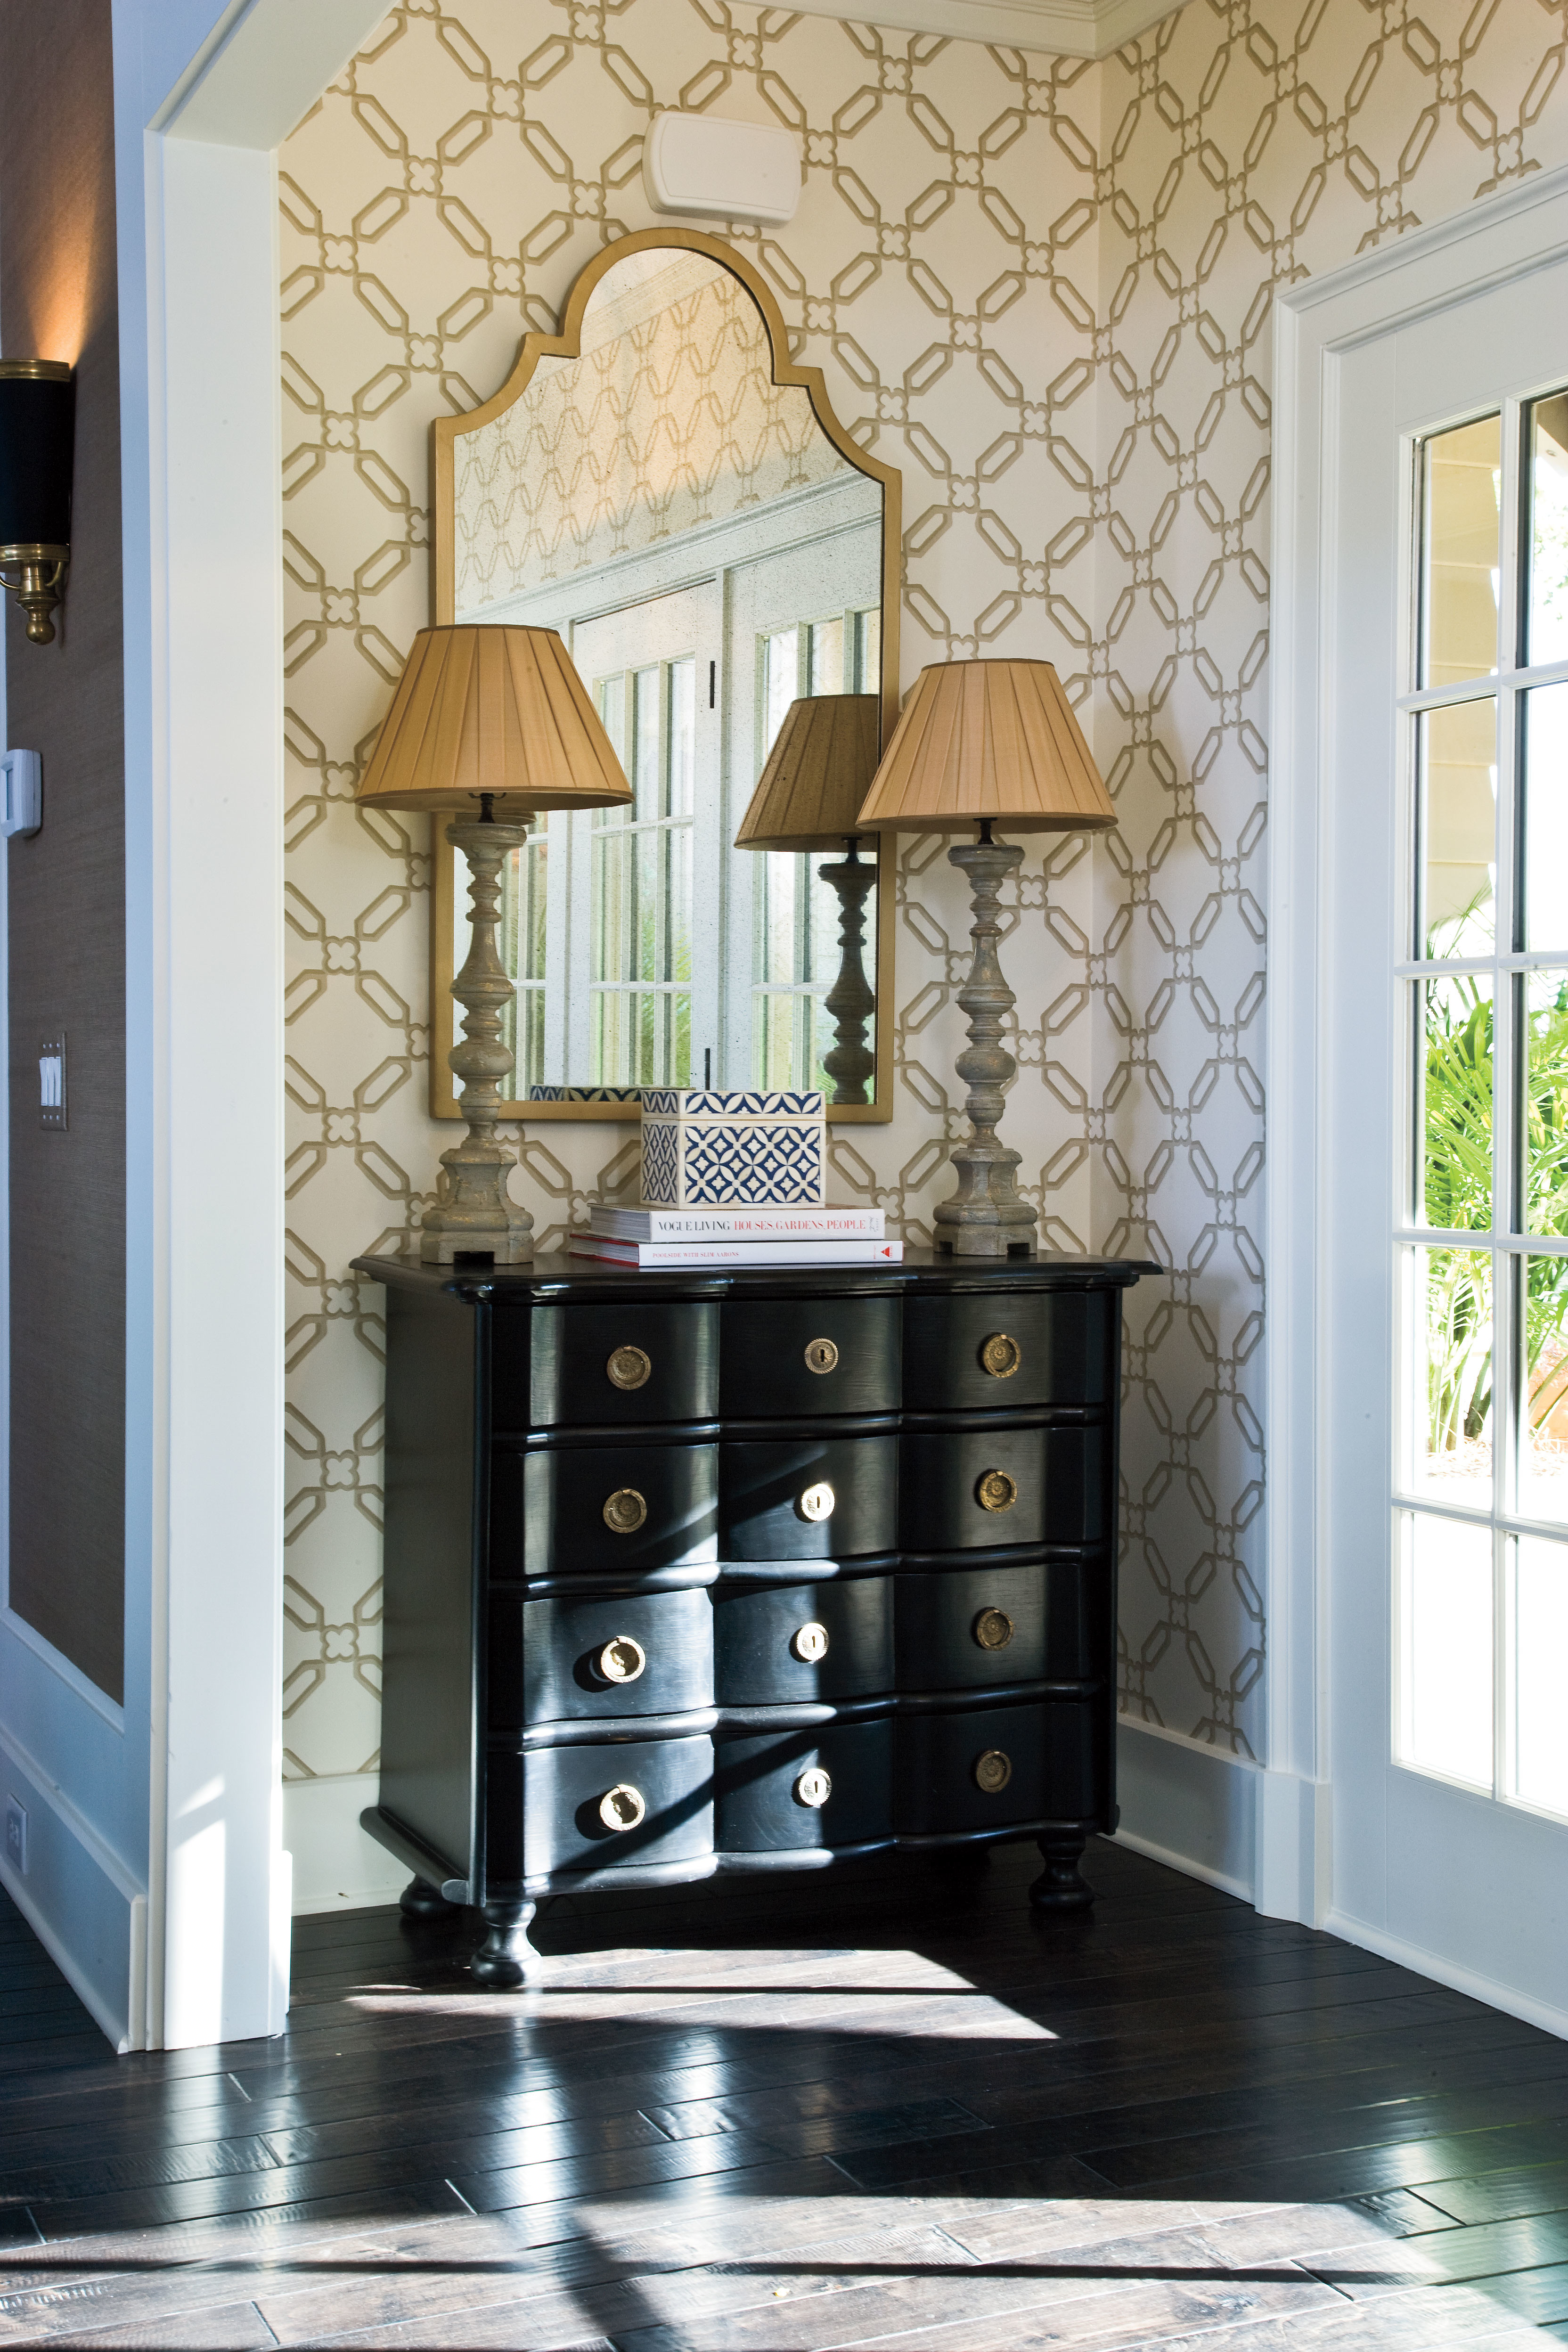 Vivid Wallpaper - Fabulous Foyer Decorating Ideas - Southern Living